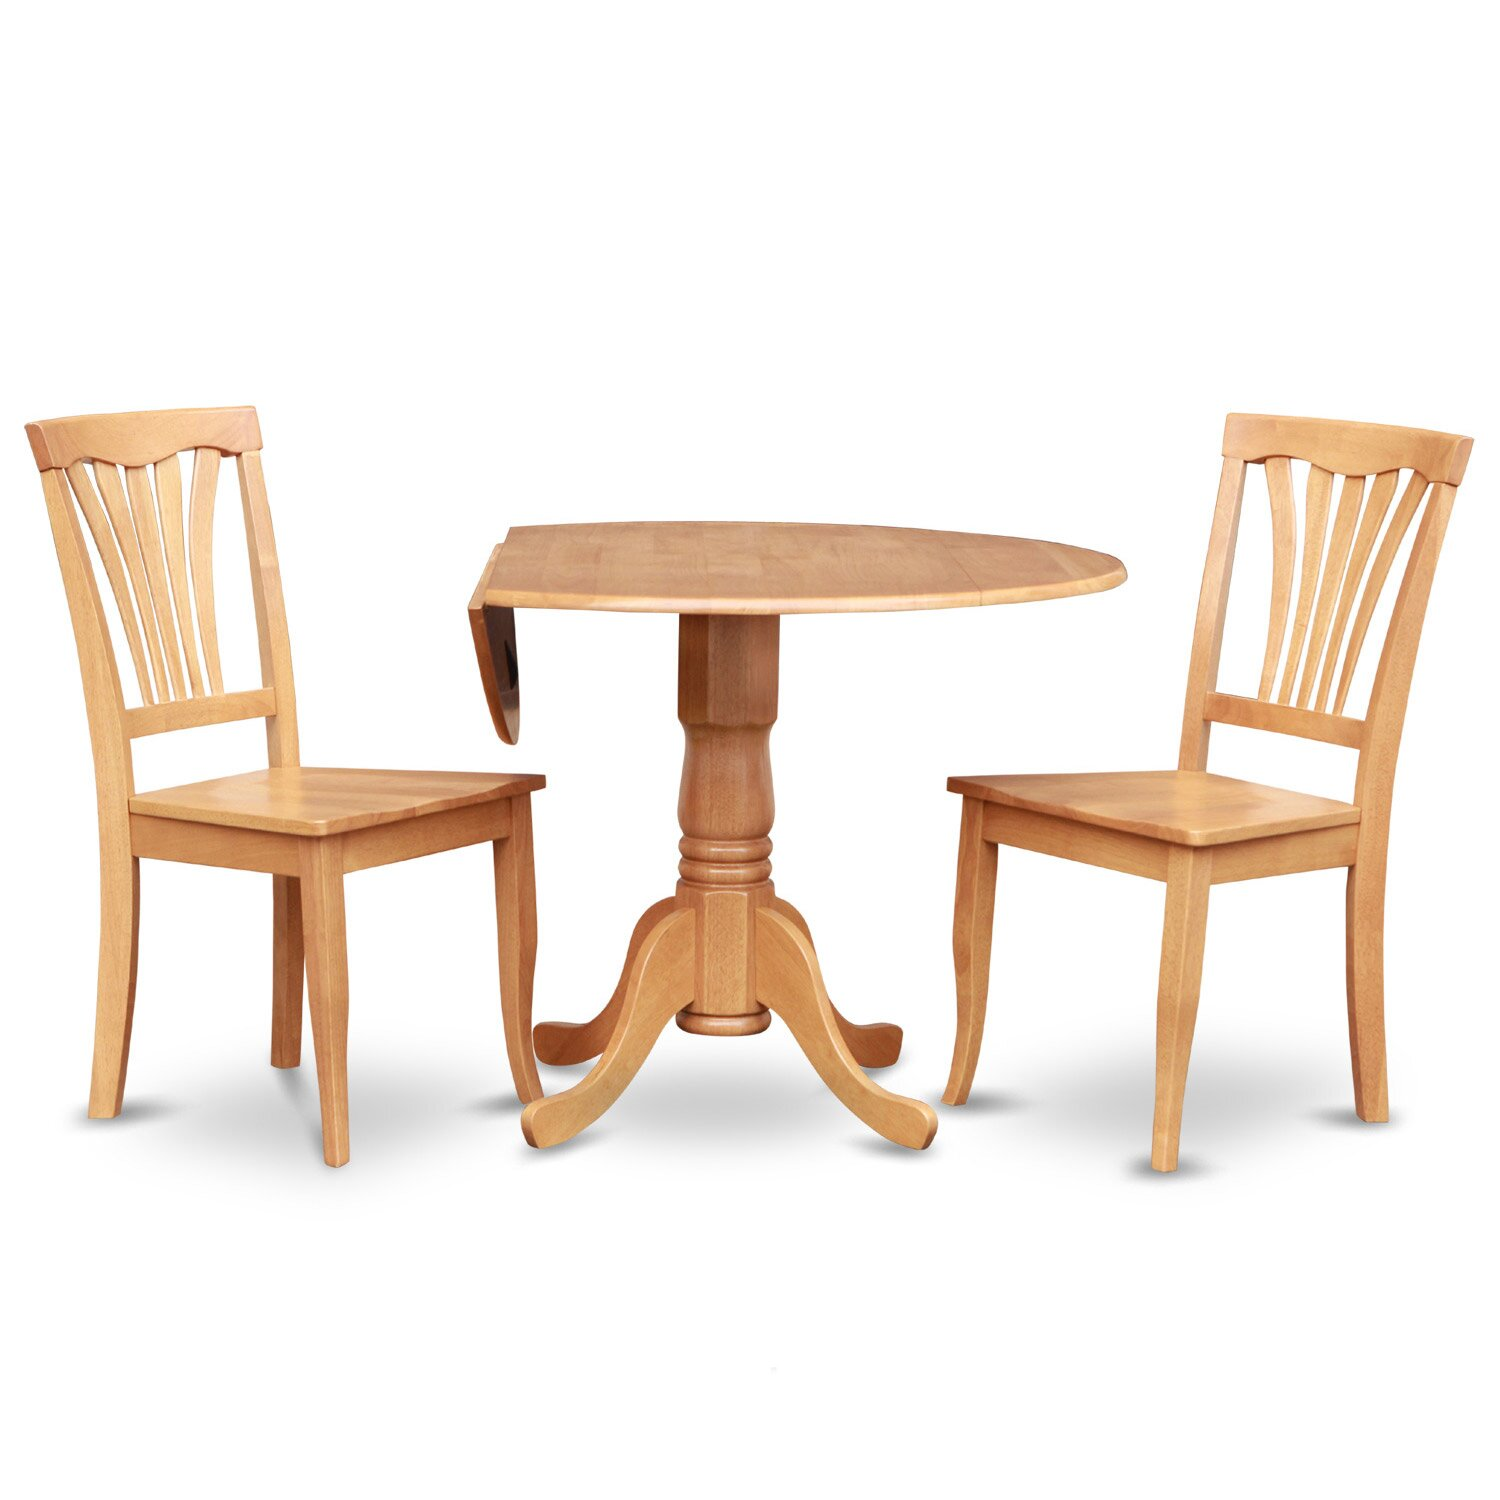 Wooden importers dublin 3 piece dining set reviews wayfair for Small dining table with stools